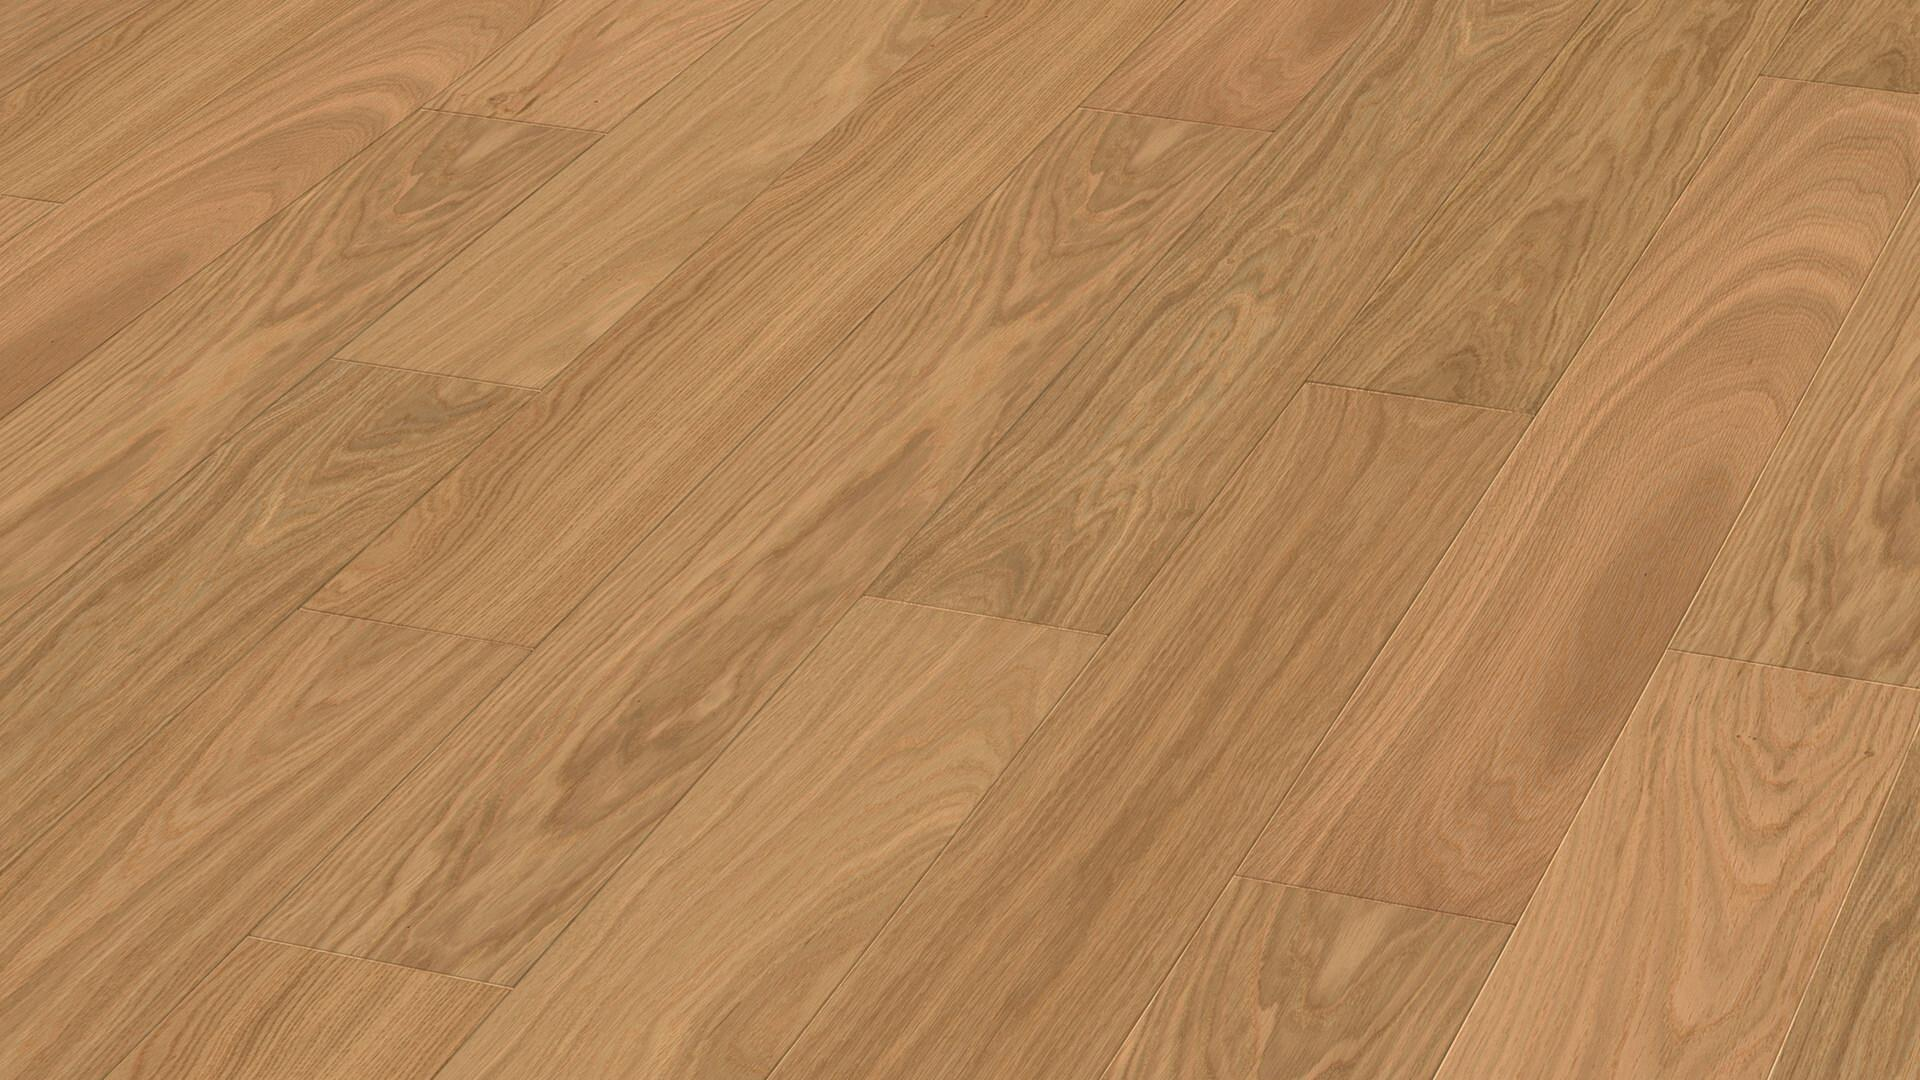 Parquet MeisterParquet. longlife PS 300 Roble armónico 8027